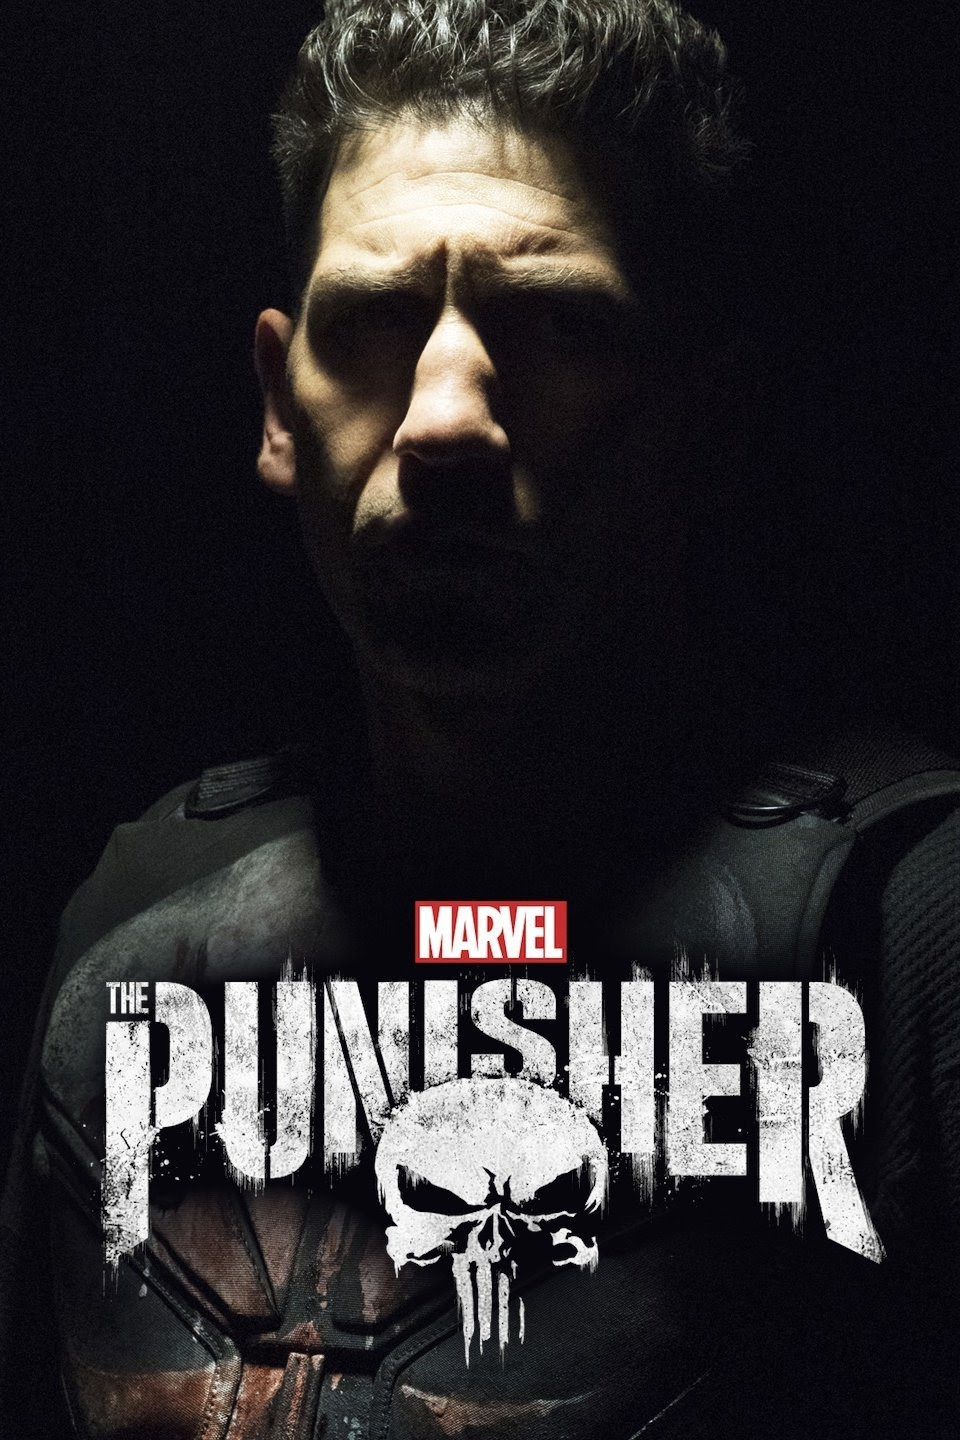 Marvel's The Punisher S01 E11 Cut